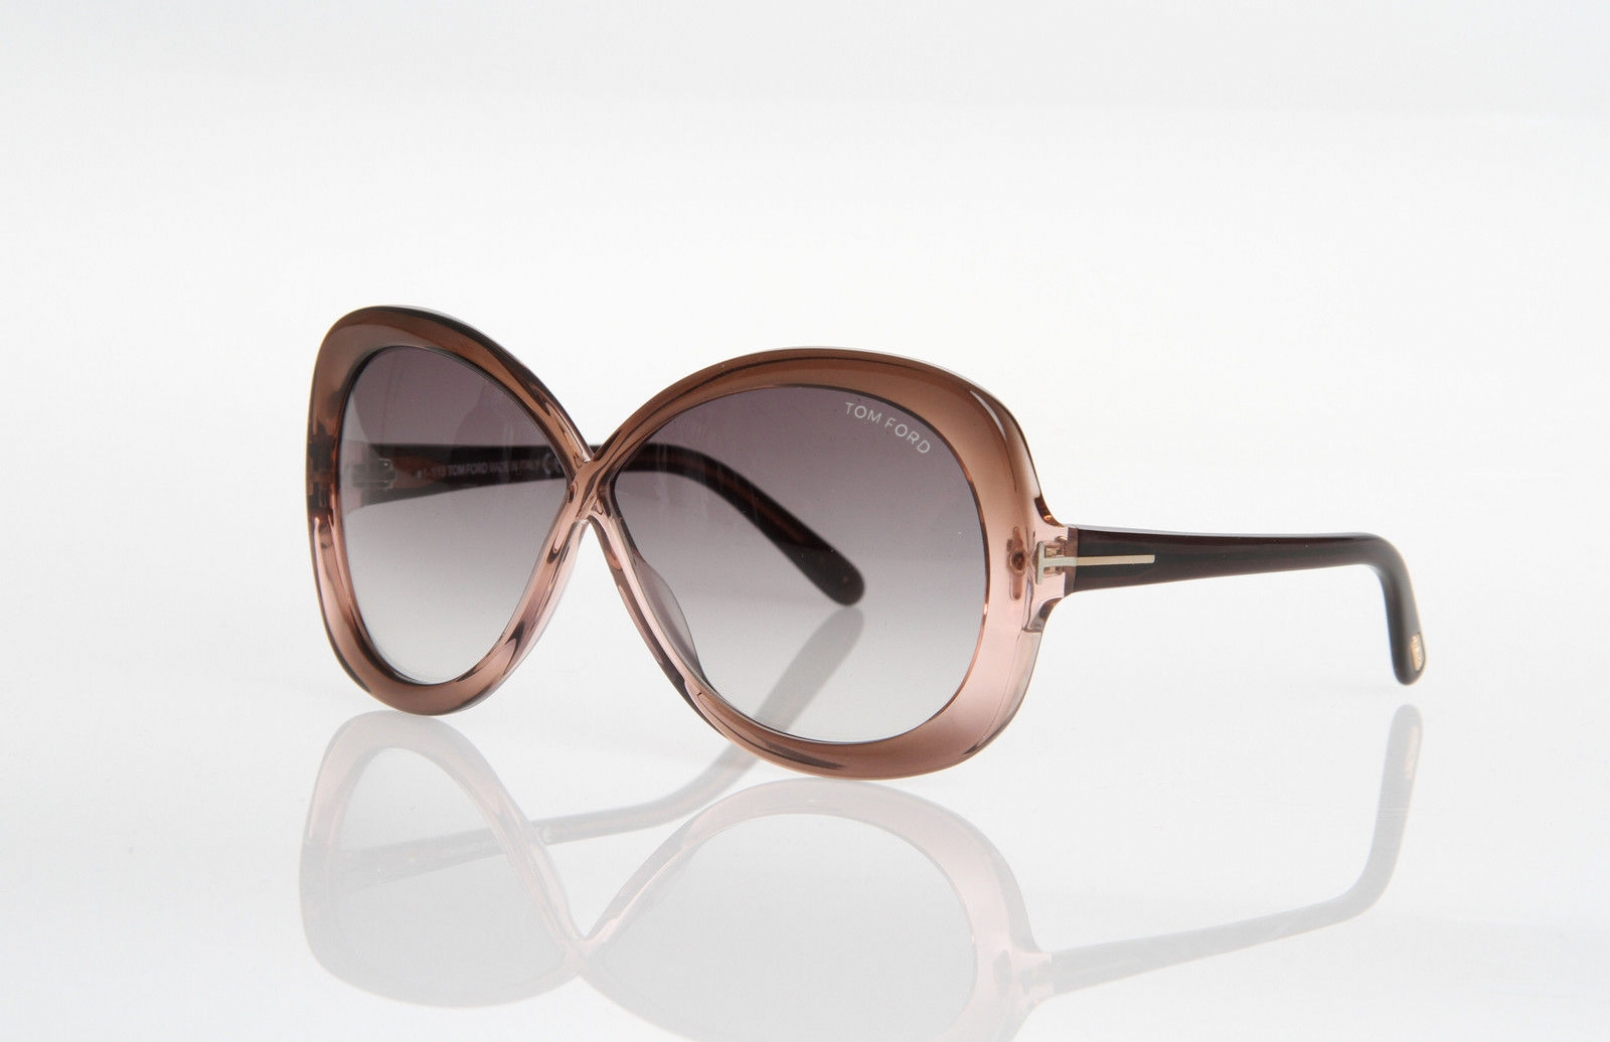 TOM FORD MARGOT TF226 74B